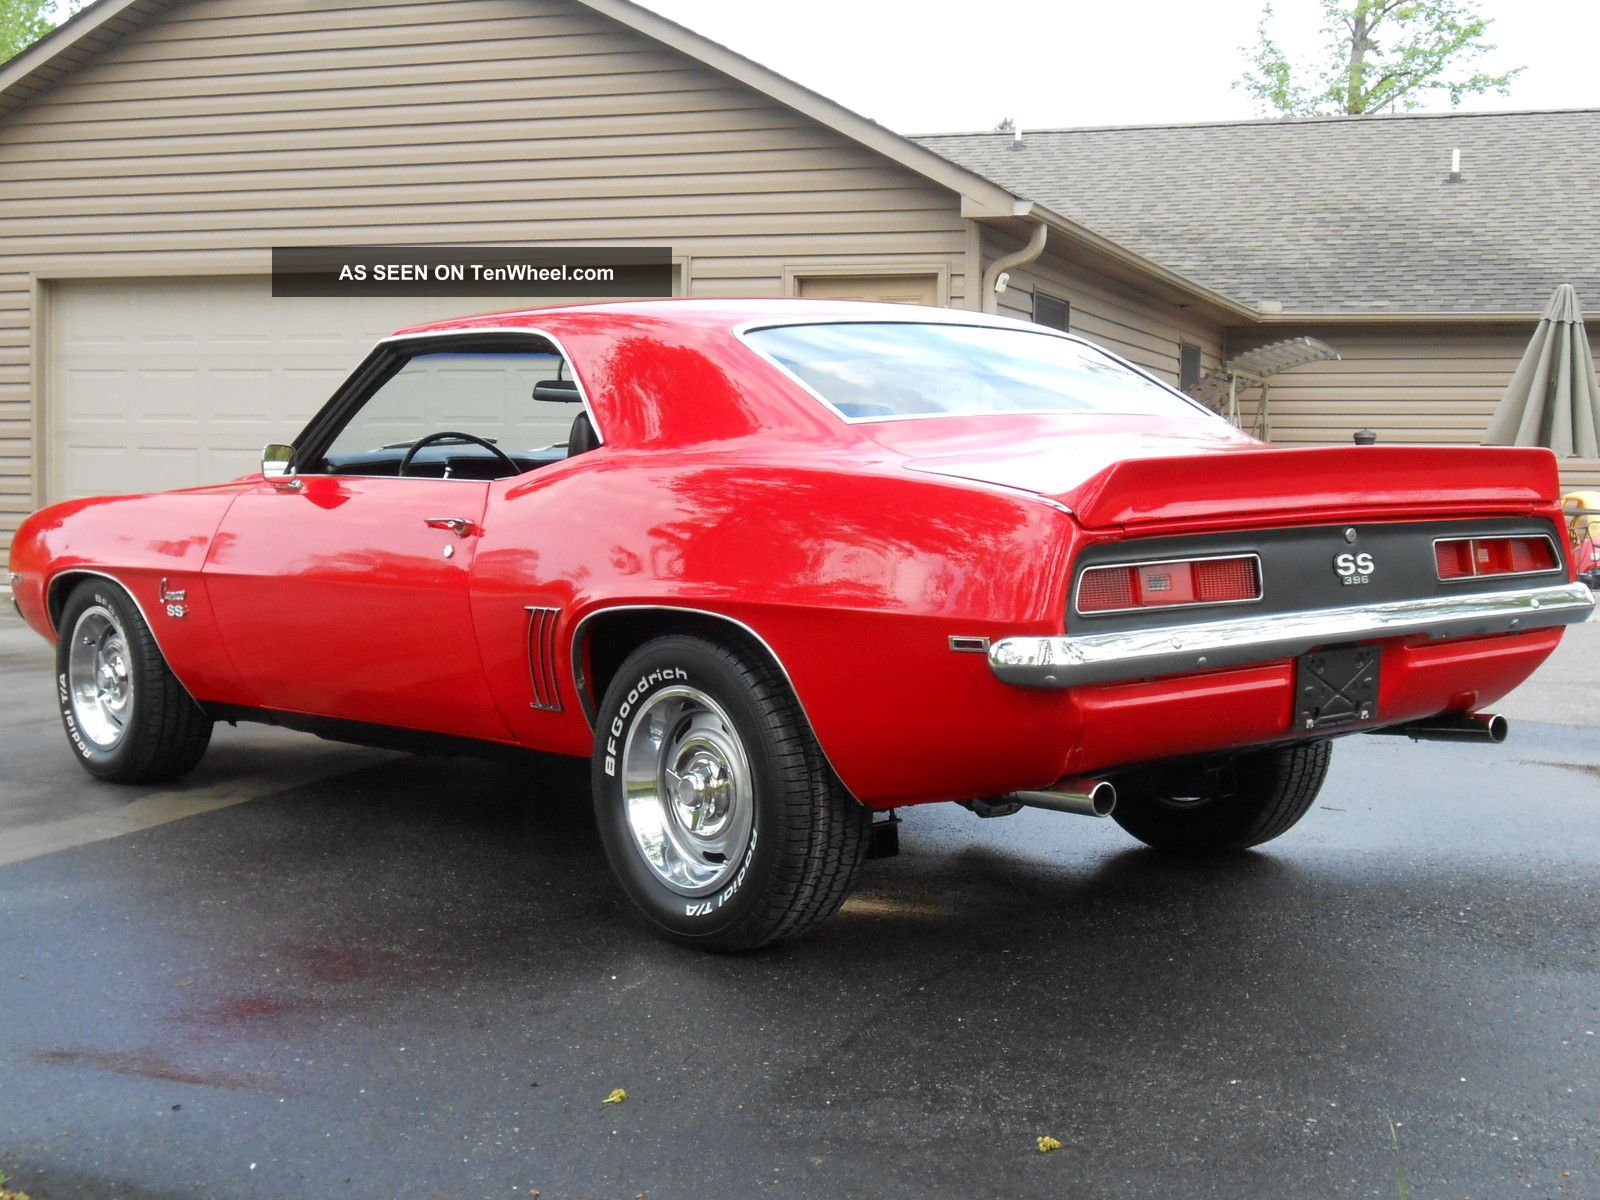 1969 Camaro Ss 396 4 Speed Matching Numbers Real Deal